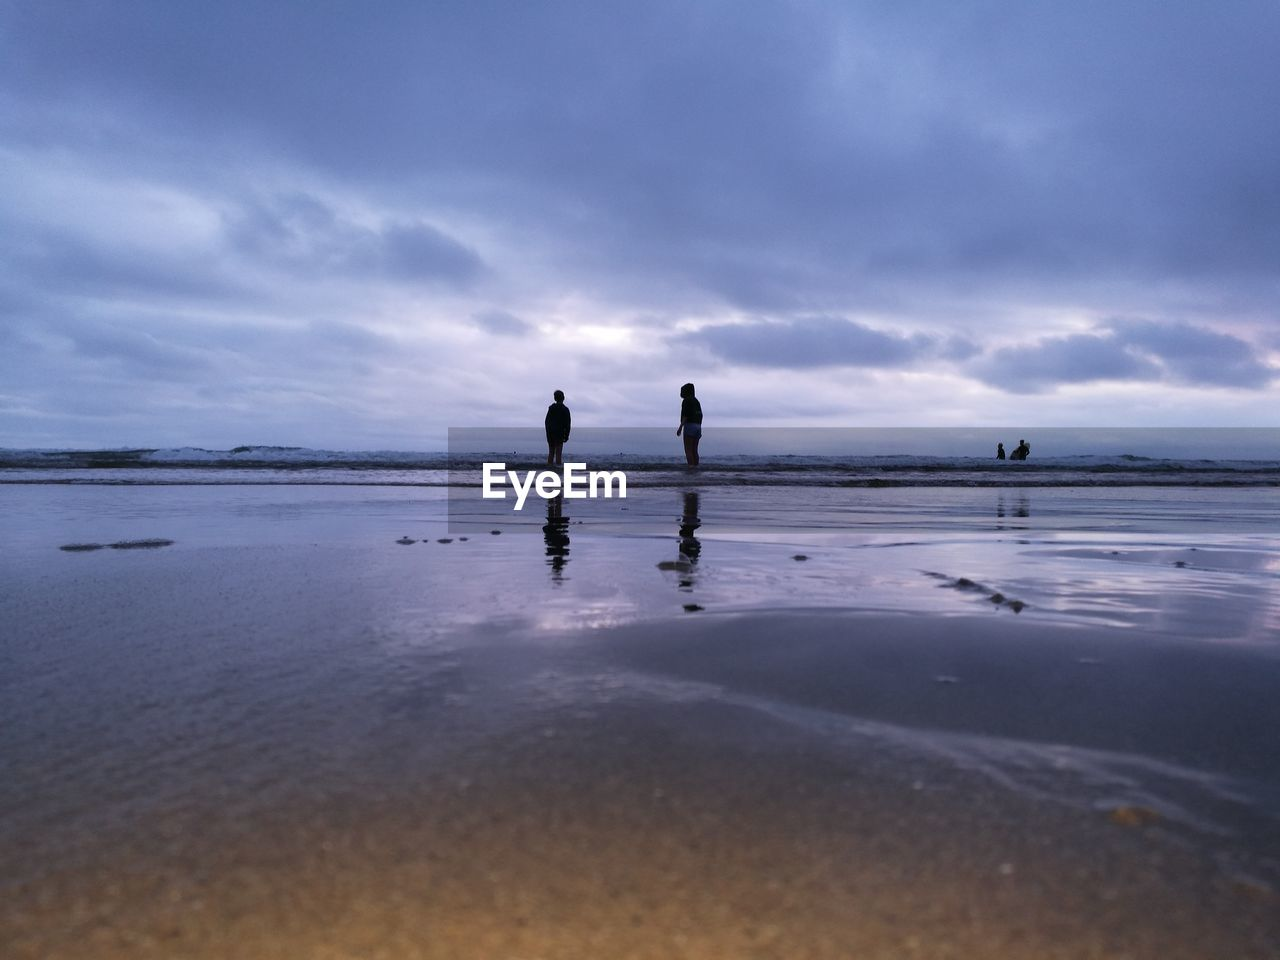 sky, water, cloud - sky, sea, beach, two people, nature, beauty in nature, tranquility, real people, scenics - nature, land, reflection, tranquil scene, leisure activity, men, horizon over water, lifestyles, silhouette, outdoors